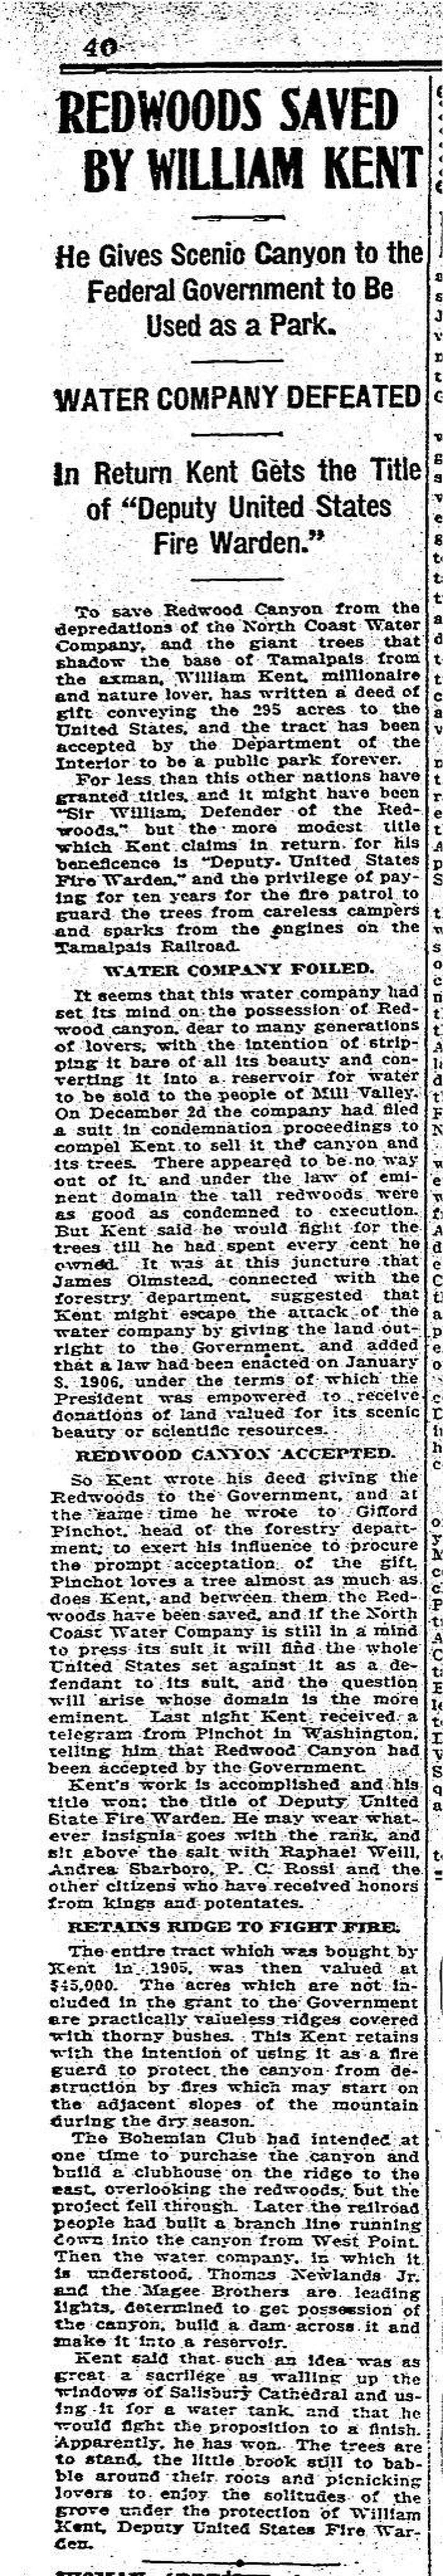 January 5, 1908 Chronicle article on William Kent donating Muir Woods